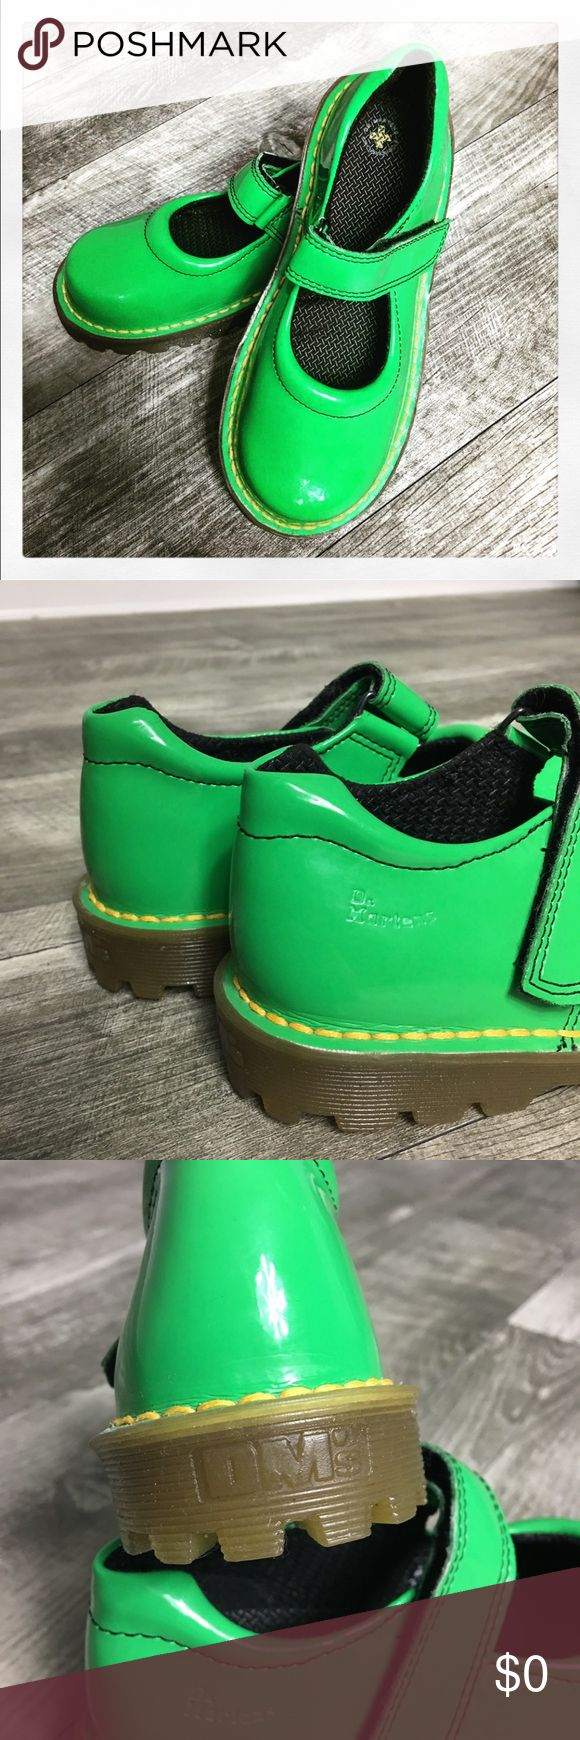 Dr. Martens Patent Leather Mary Jane Shoes. Dr. Martens Patent Leather Mary Jane Shoes. Velcro strap. Bright green color. In good preowned condition. ***Small black mark on inner right heel area. See photos.*** I have not tried to shine or clean these. Dr. Martens Shoes